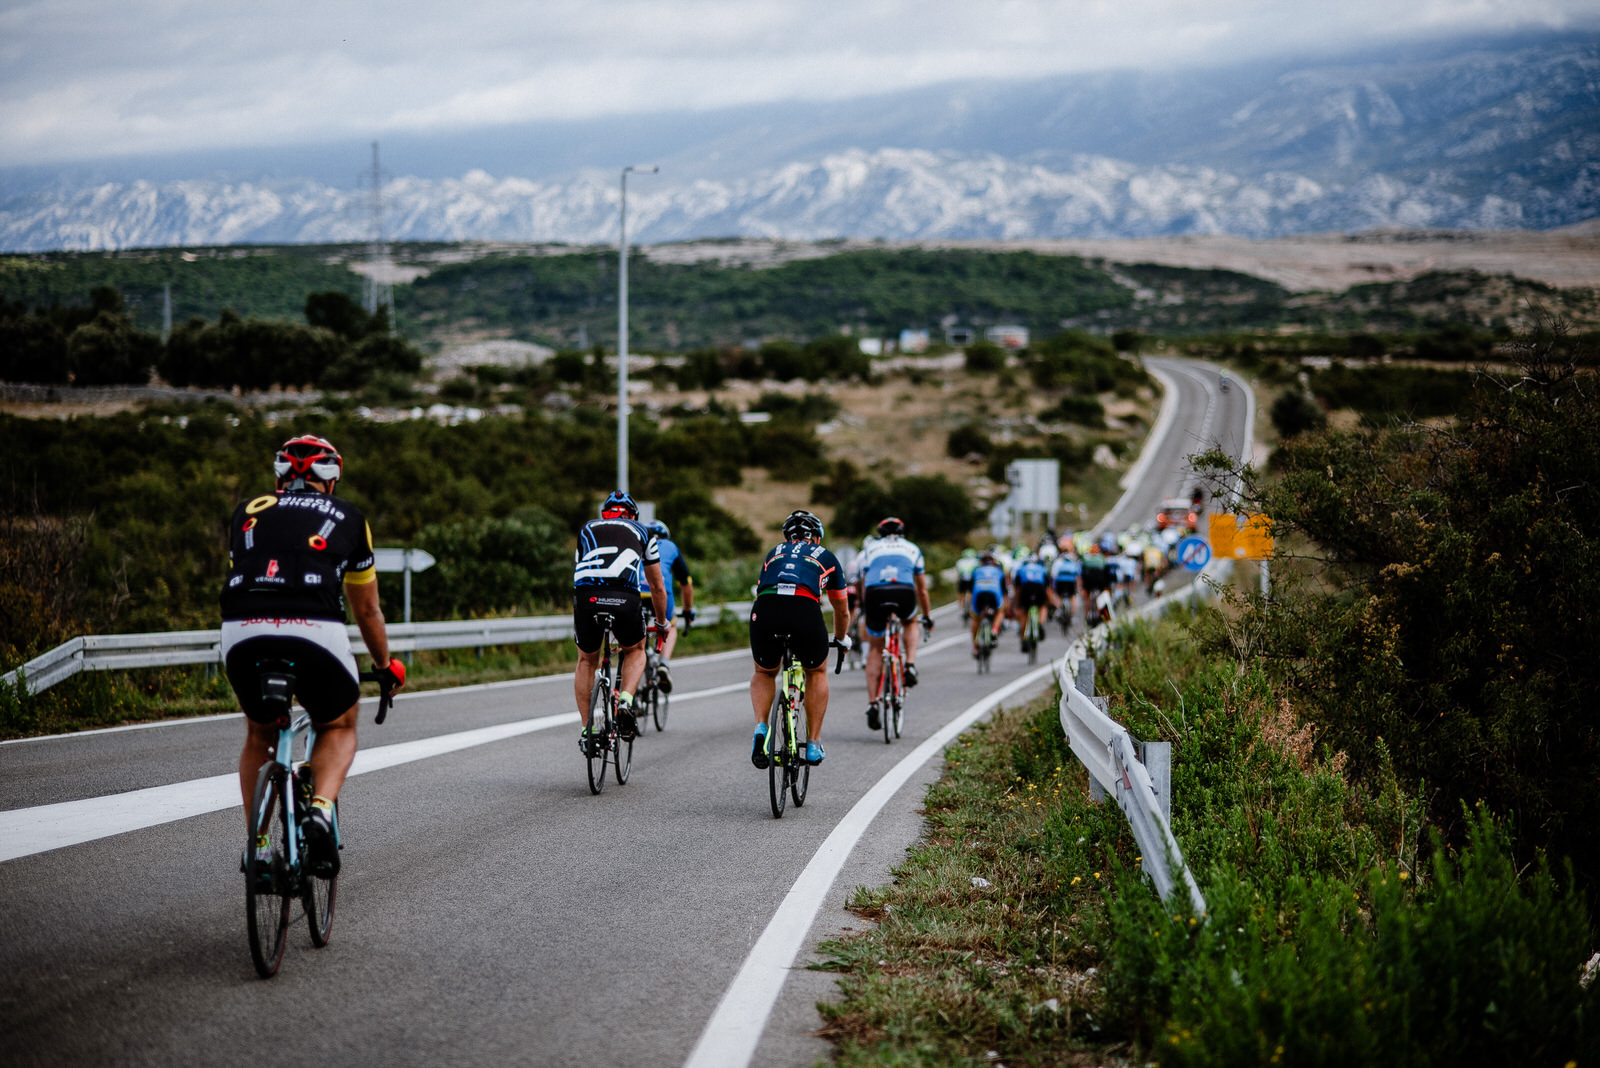 likaclub_Granfondo-Pag-–-Cycling-on-the-Moon_2019-10